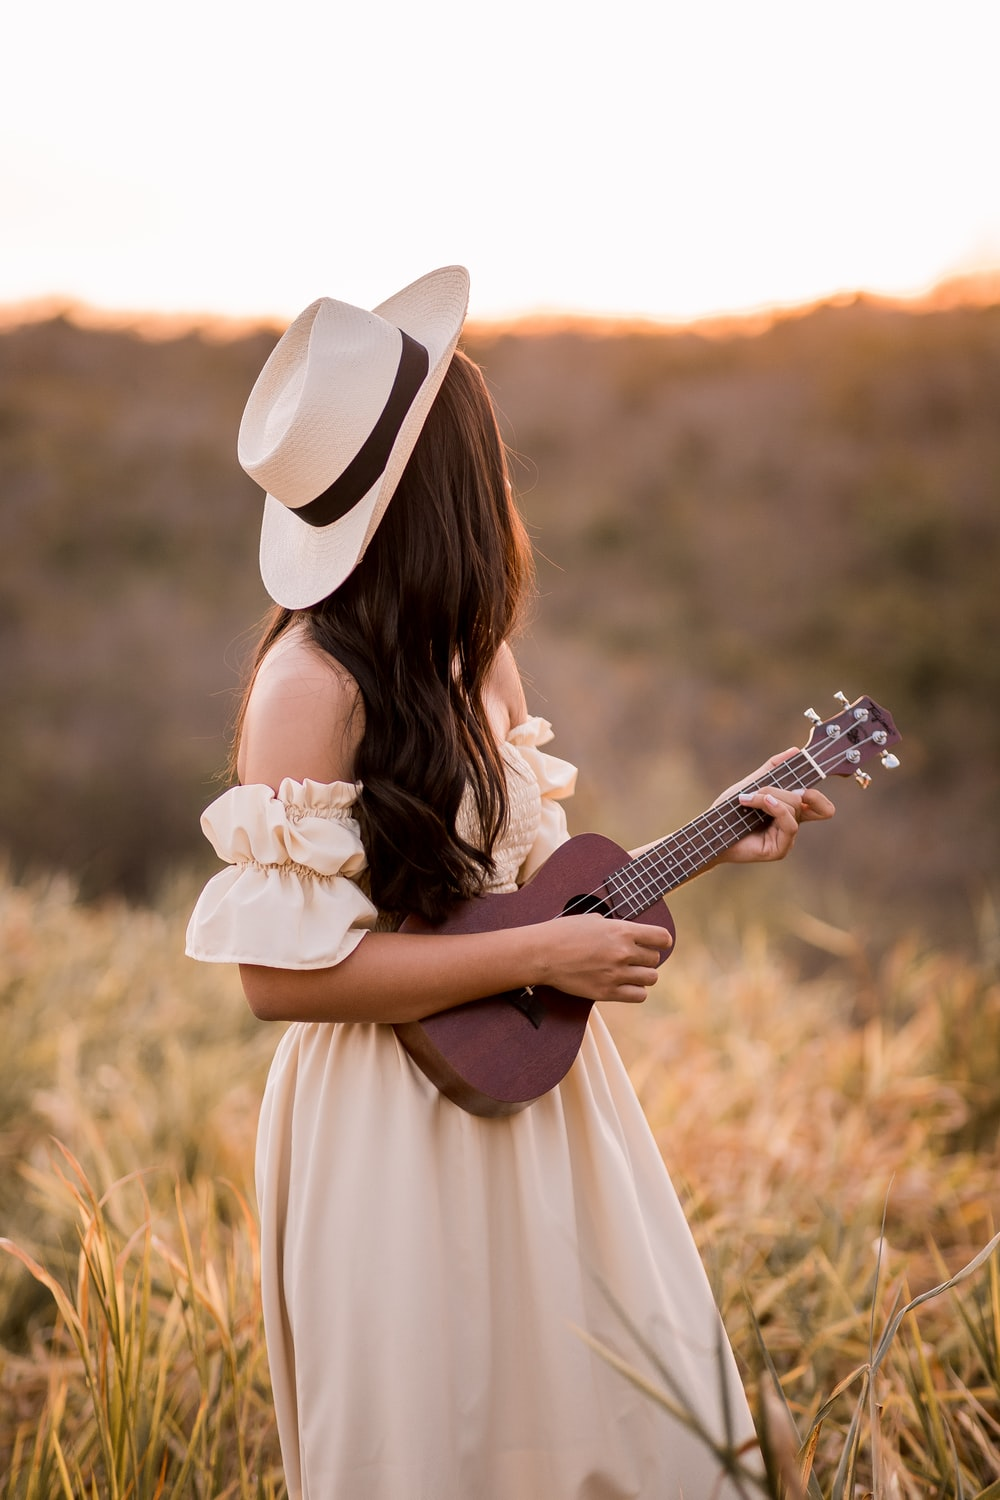 woman in white dress playing acoustic guitar